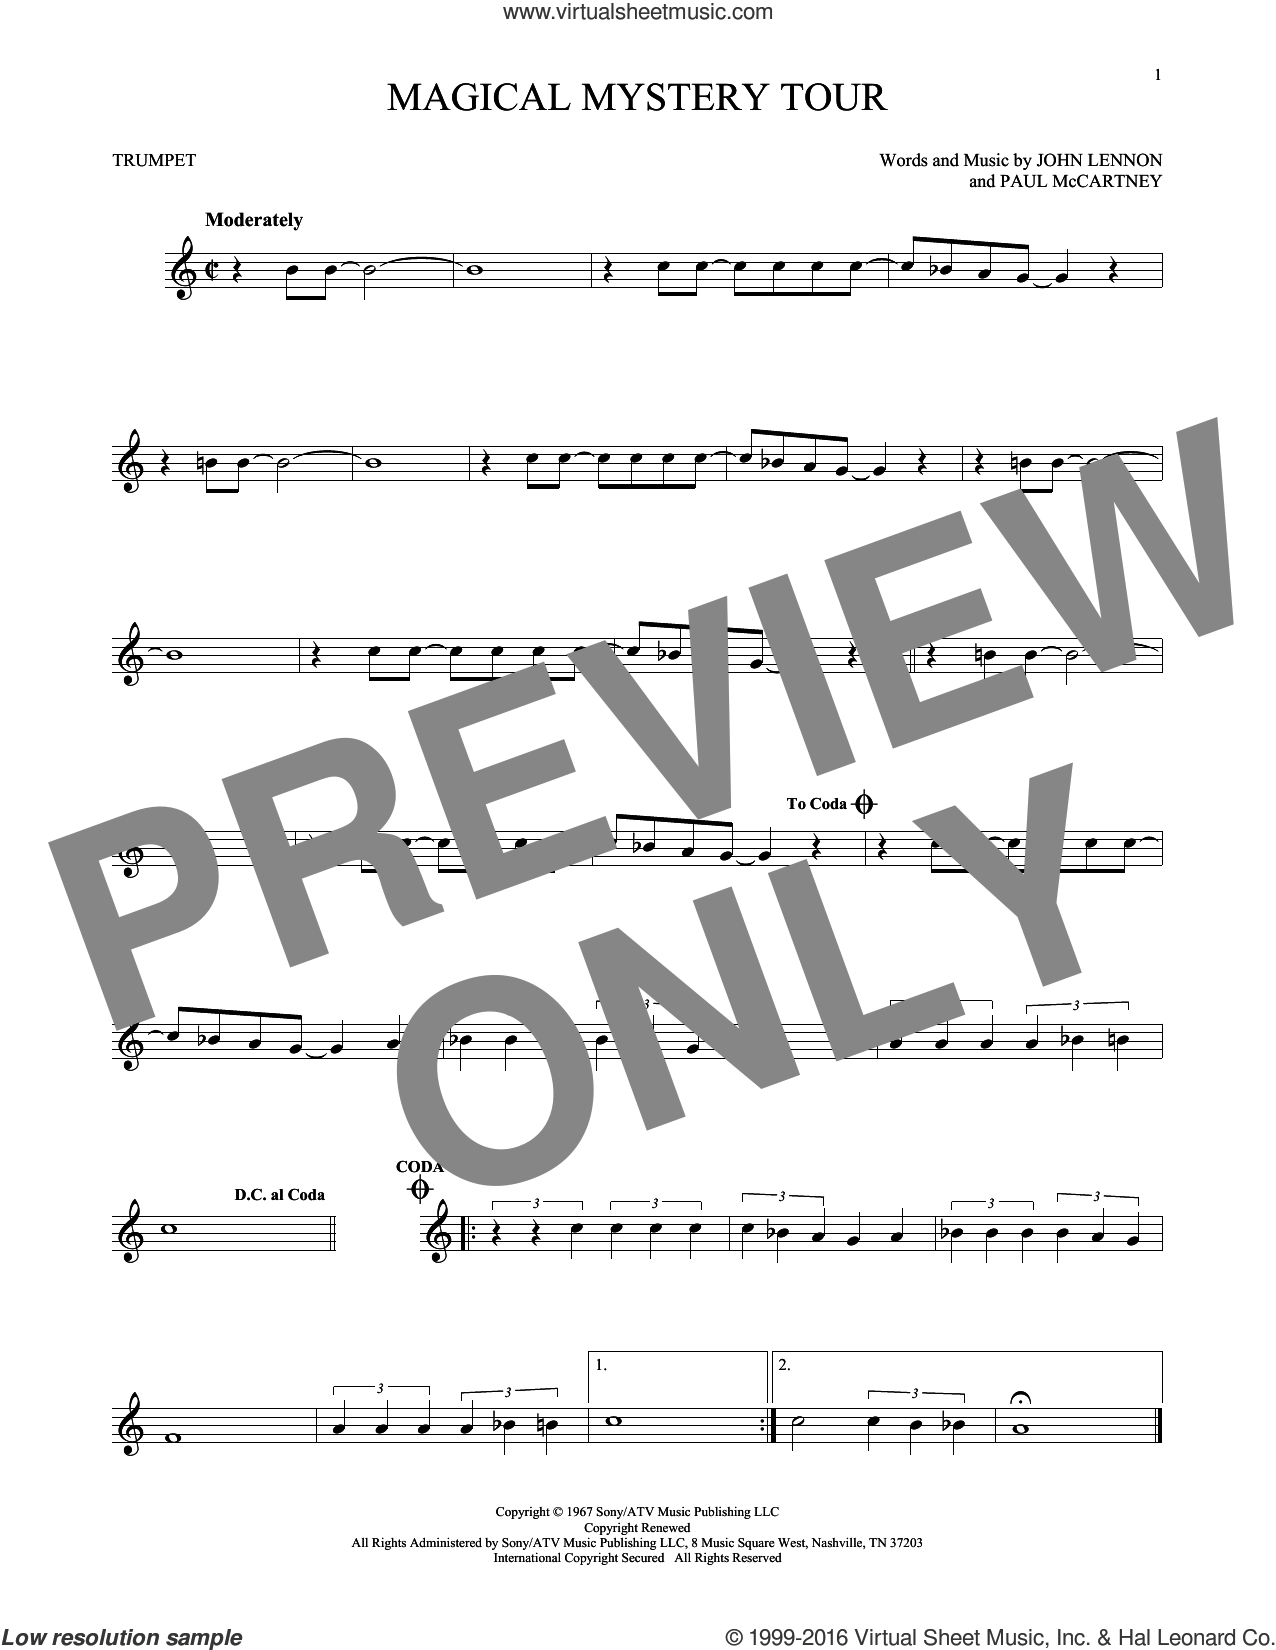 Magical Mystery Tour sheet music for trumpet solo by Paul McCartney